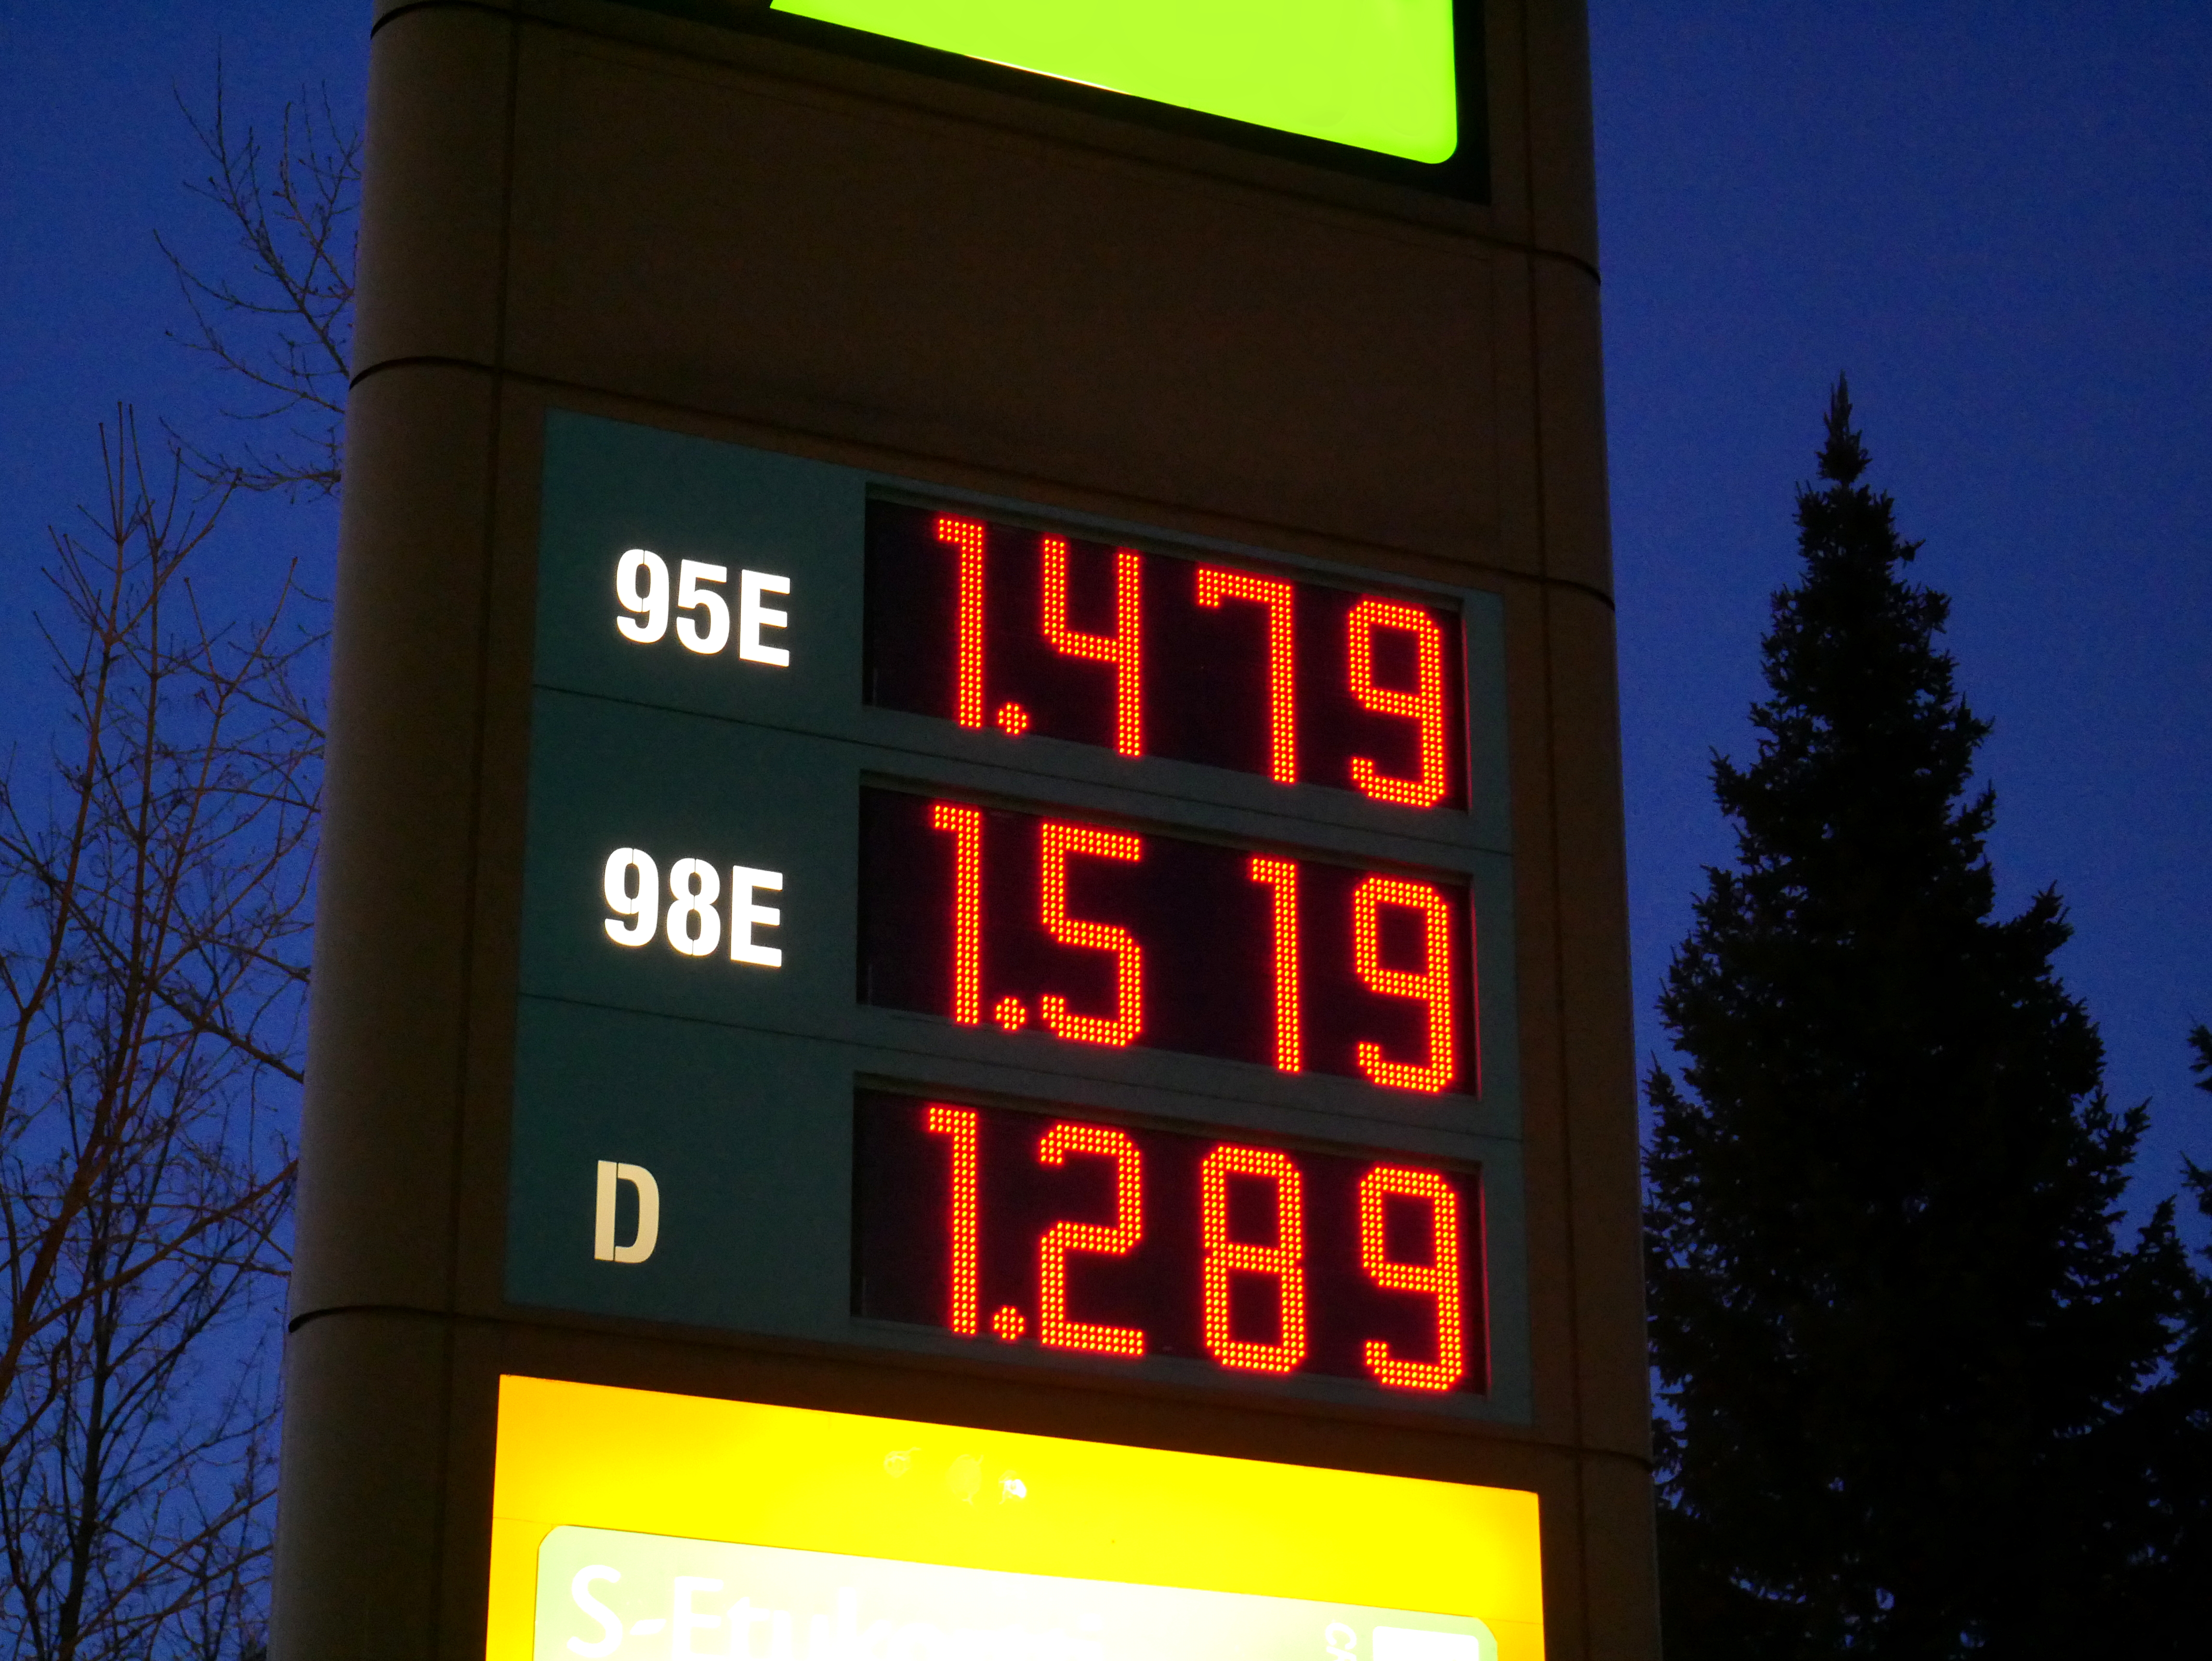 File:Fuel prices night jpg - Wikimedia Commons